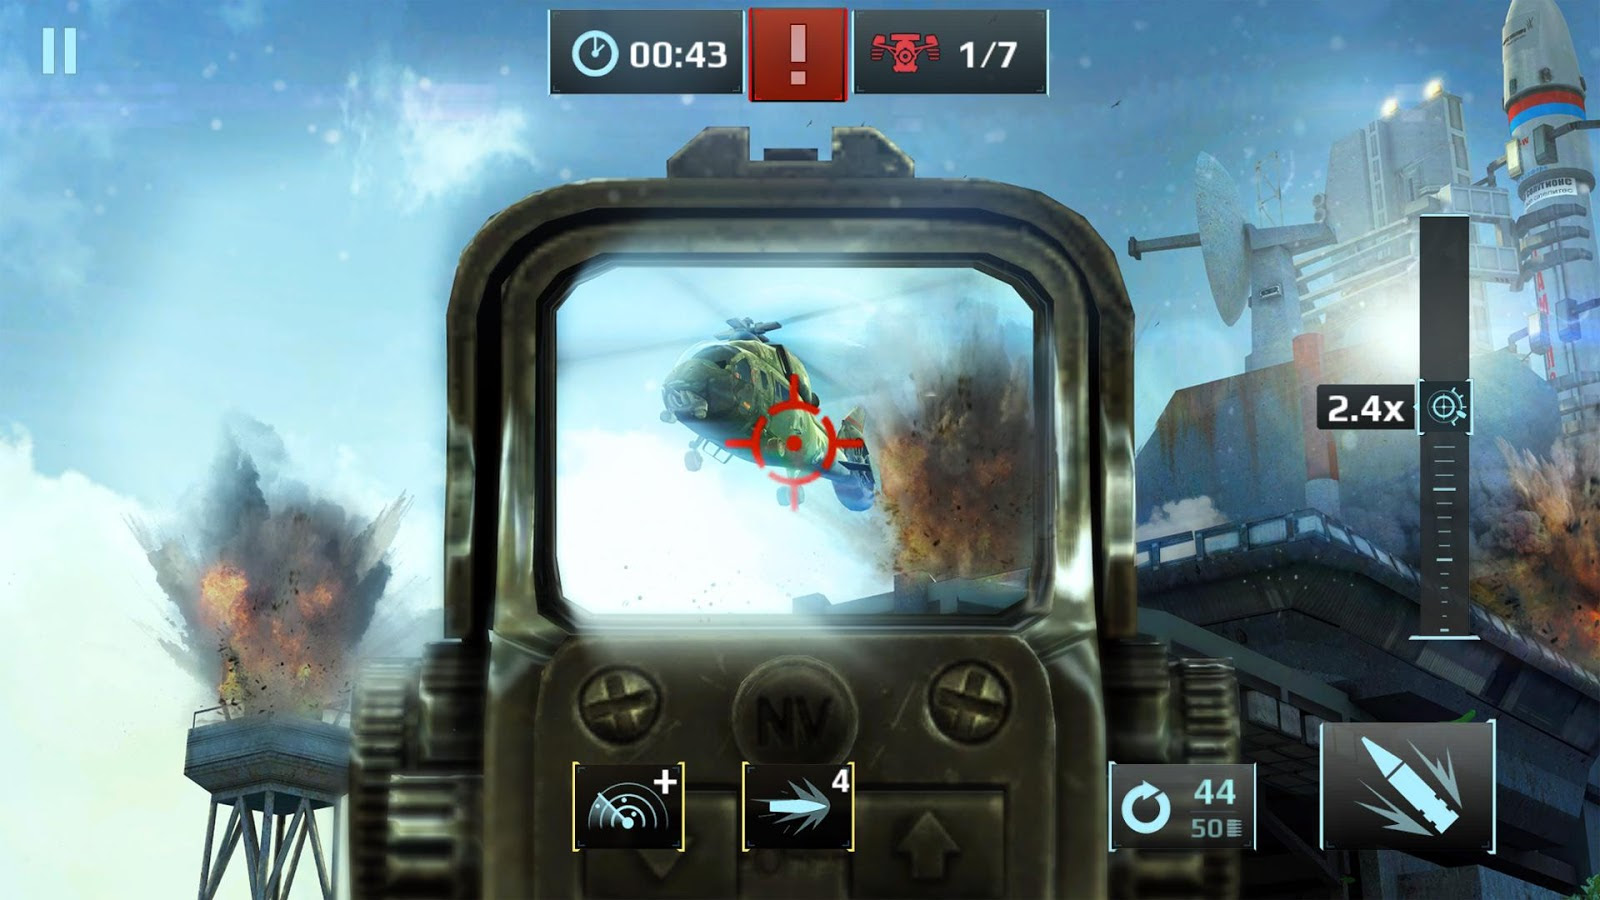 Sniper Fury mod apk unlimited ammo download, Sniper Fury mod apk, Sniper Fury mod apk download data, unlimited ammo Sniper Fury mod apk download